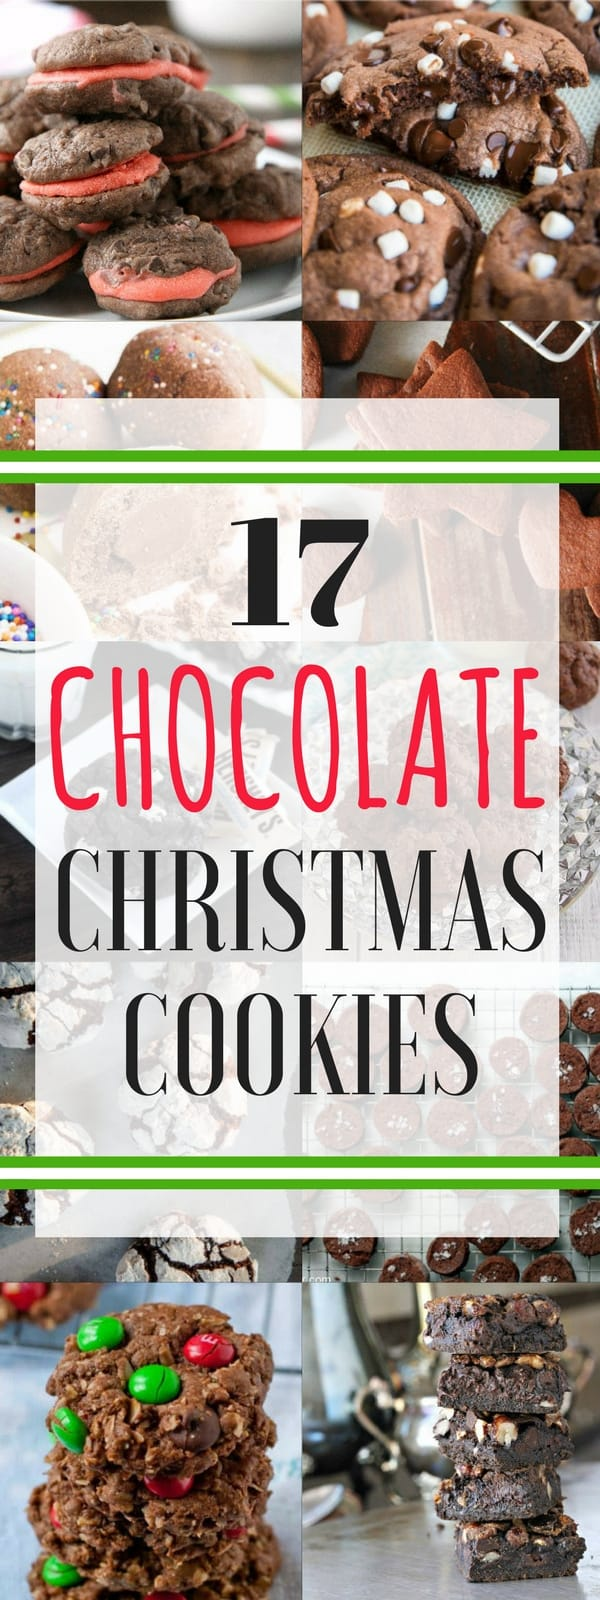 Chocolate Christmas Cookies - A little bit of everything including old fashioned cookies, kids Chrismtas cookies, gourmet Christmas cookies, and more recipes all with chocolate! SnappyGourmet.com